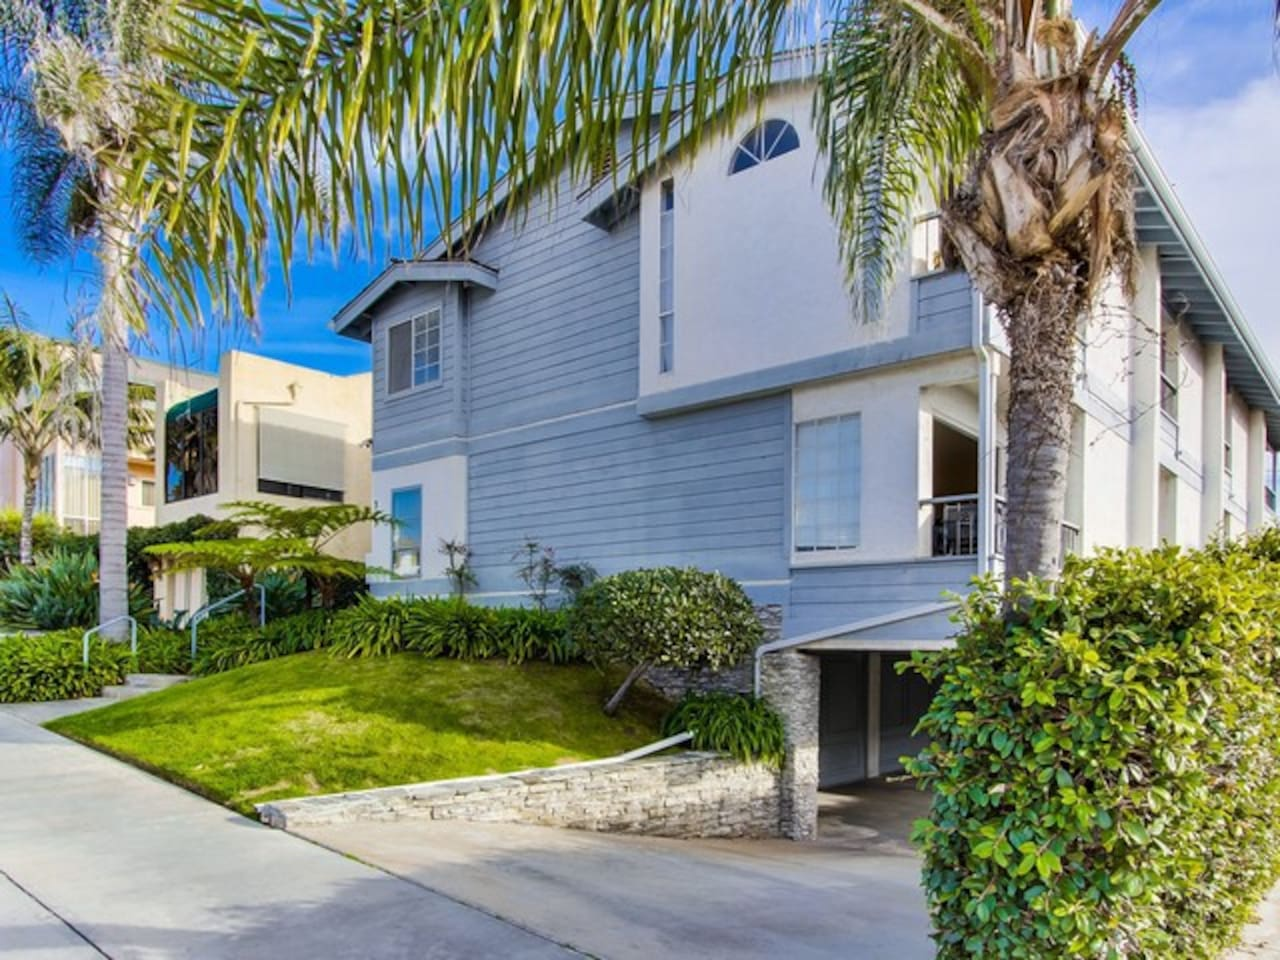 Bonair Beach House is the rear unit that has the garage and then the ground floor has the living area and 2nd floor has 2 bedrooms and 2 full bathrooms.